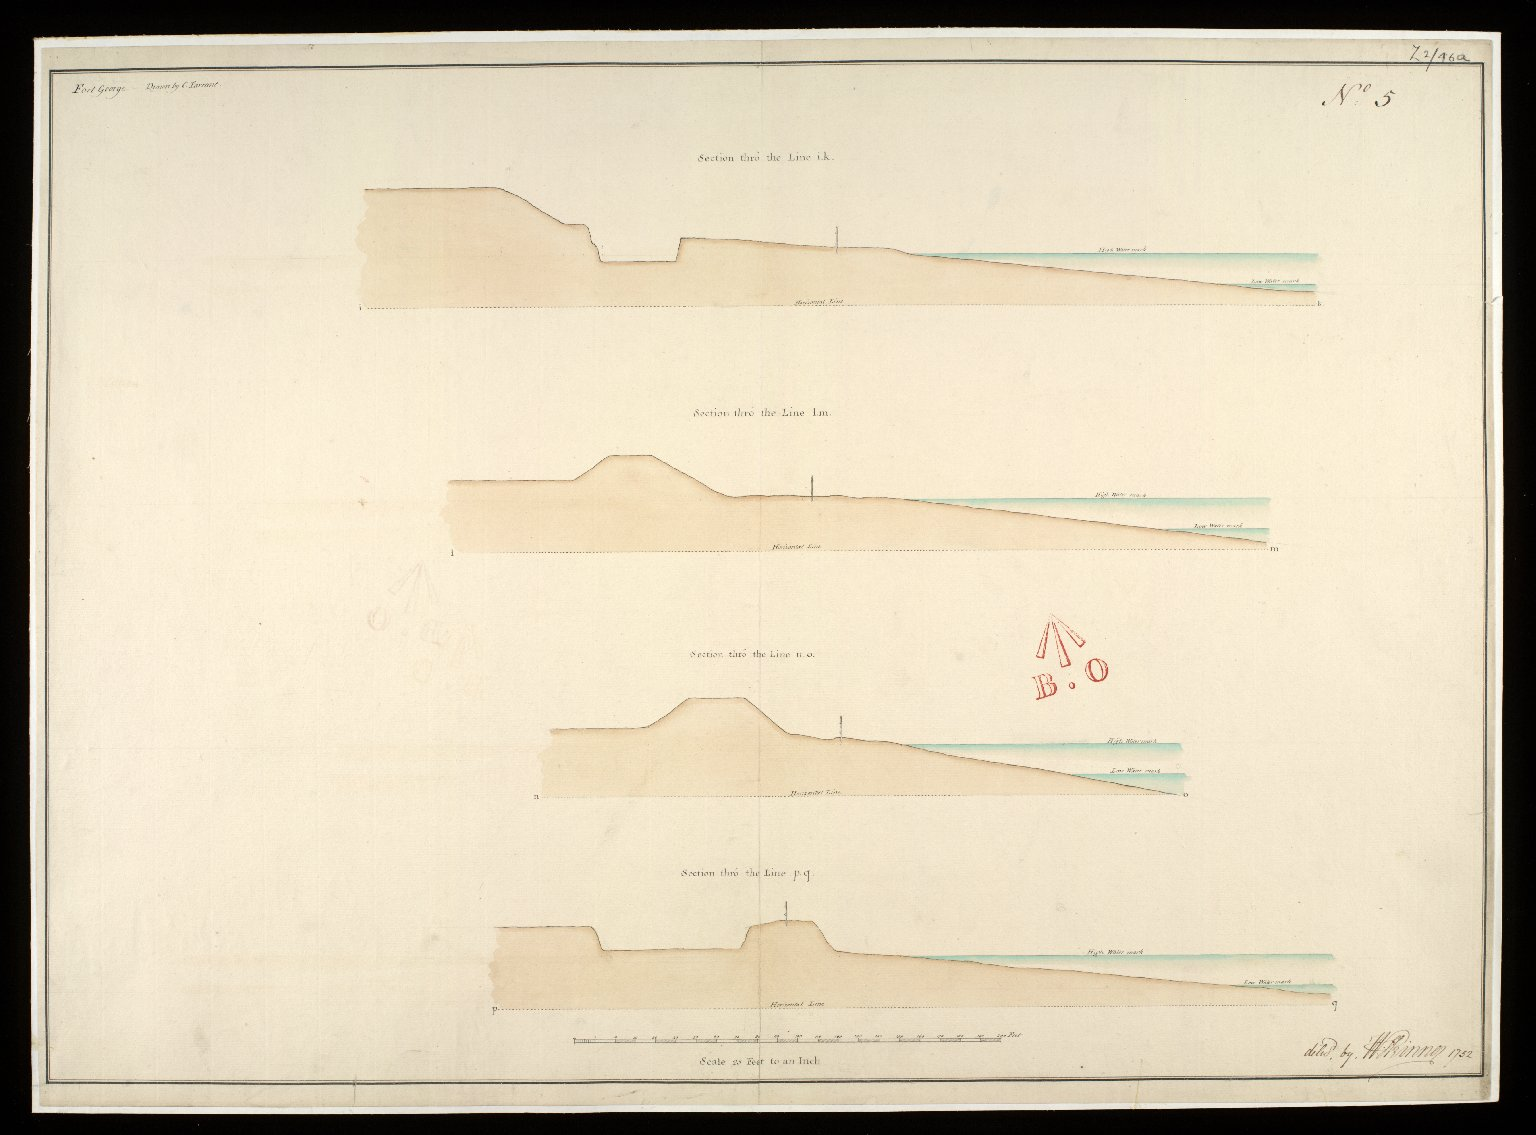 Fort George, [North Britain], 1752, No. 5 : section thro' the line i.k; section thro' the line l.m; section thro' the line n.o; section thro' the line p.q [1 of 1]